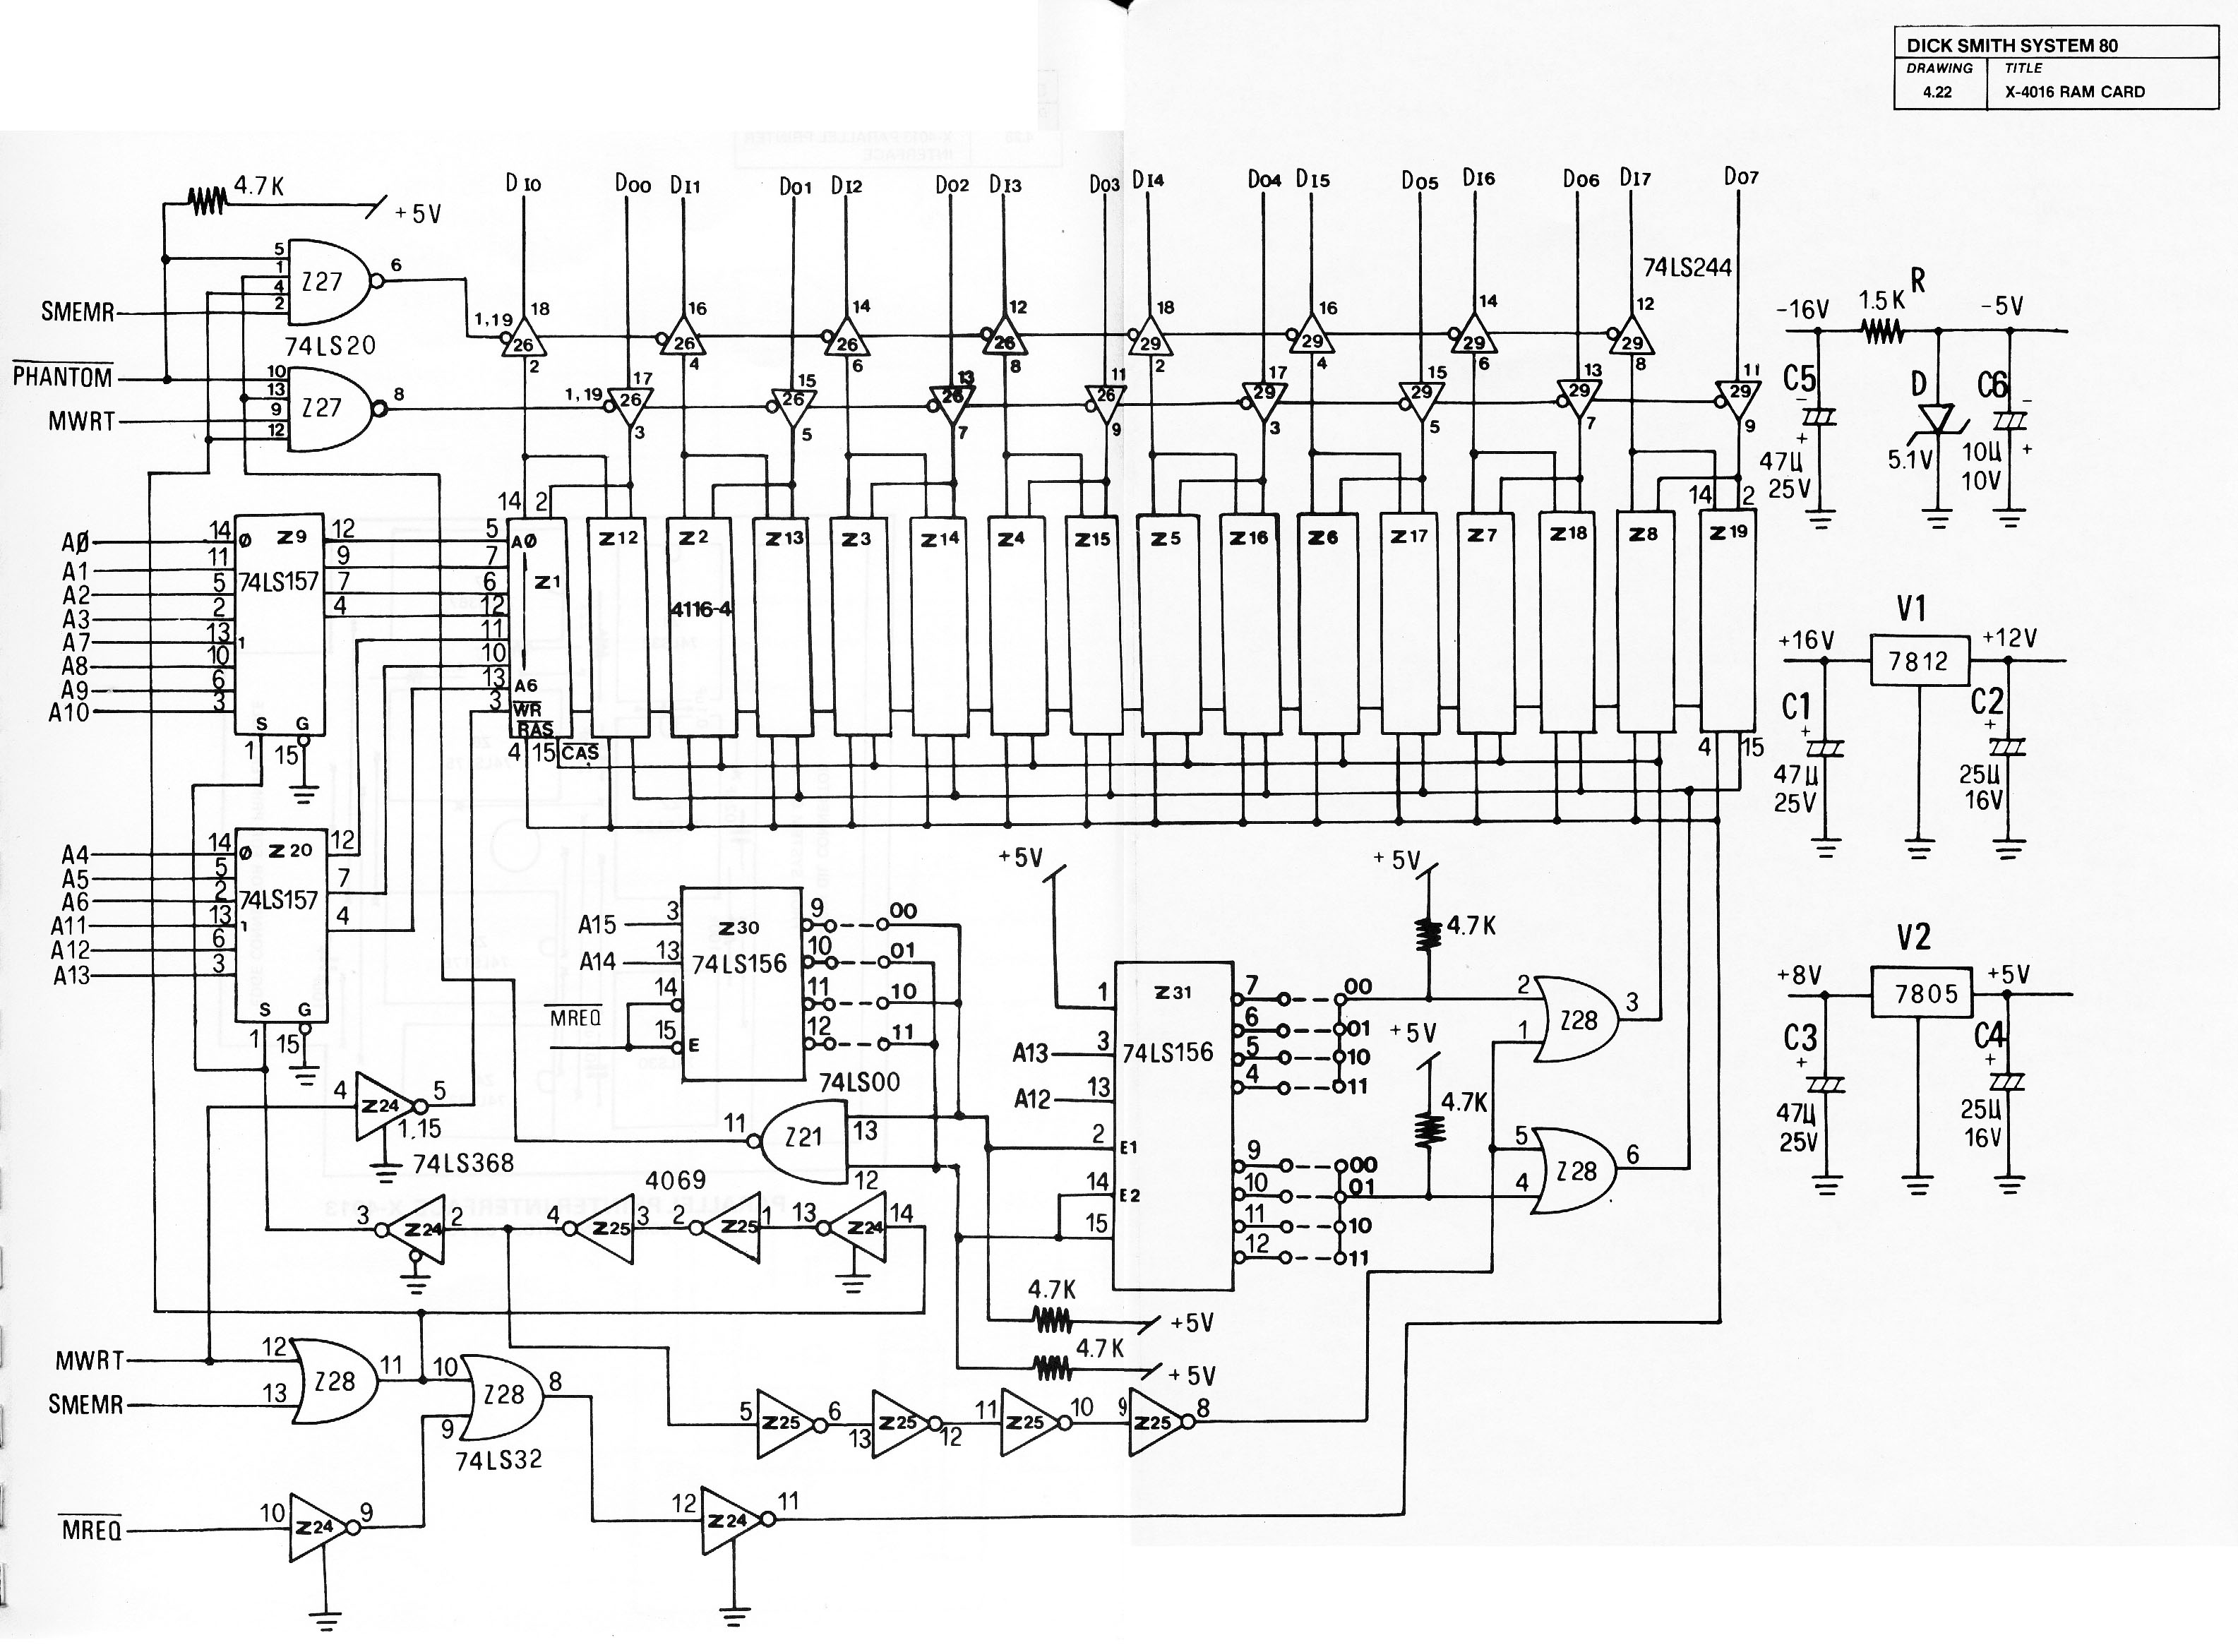 Digital Voltmeter Circuit Diagram Composed Of Mc14433 3 1 2 Dual Index 29 Computer Related Seekiccom Apps System 80 Manuals